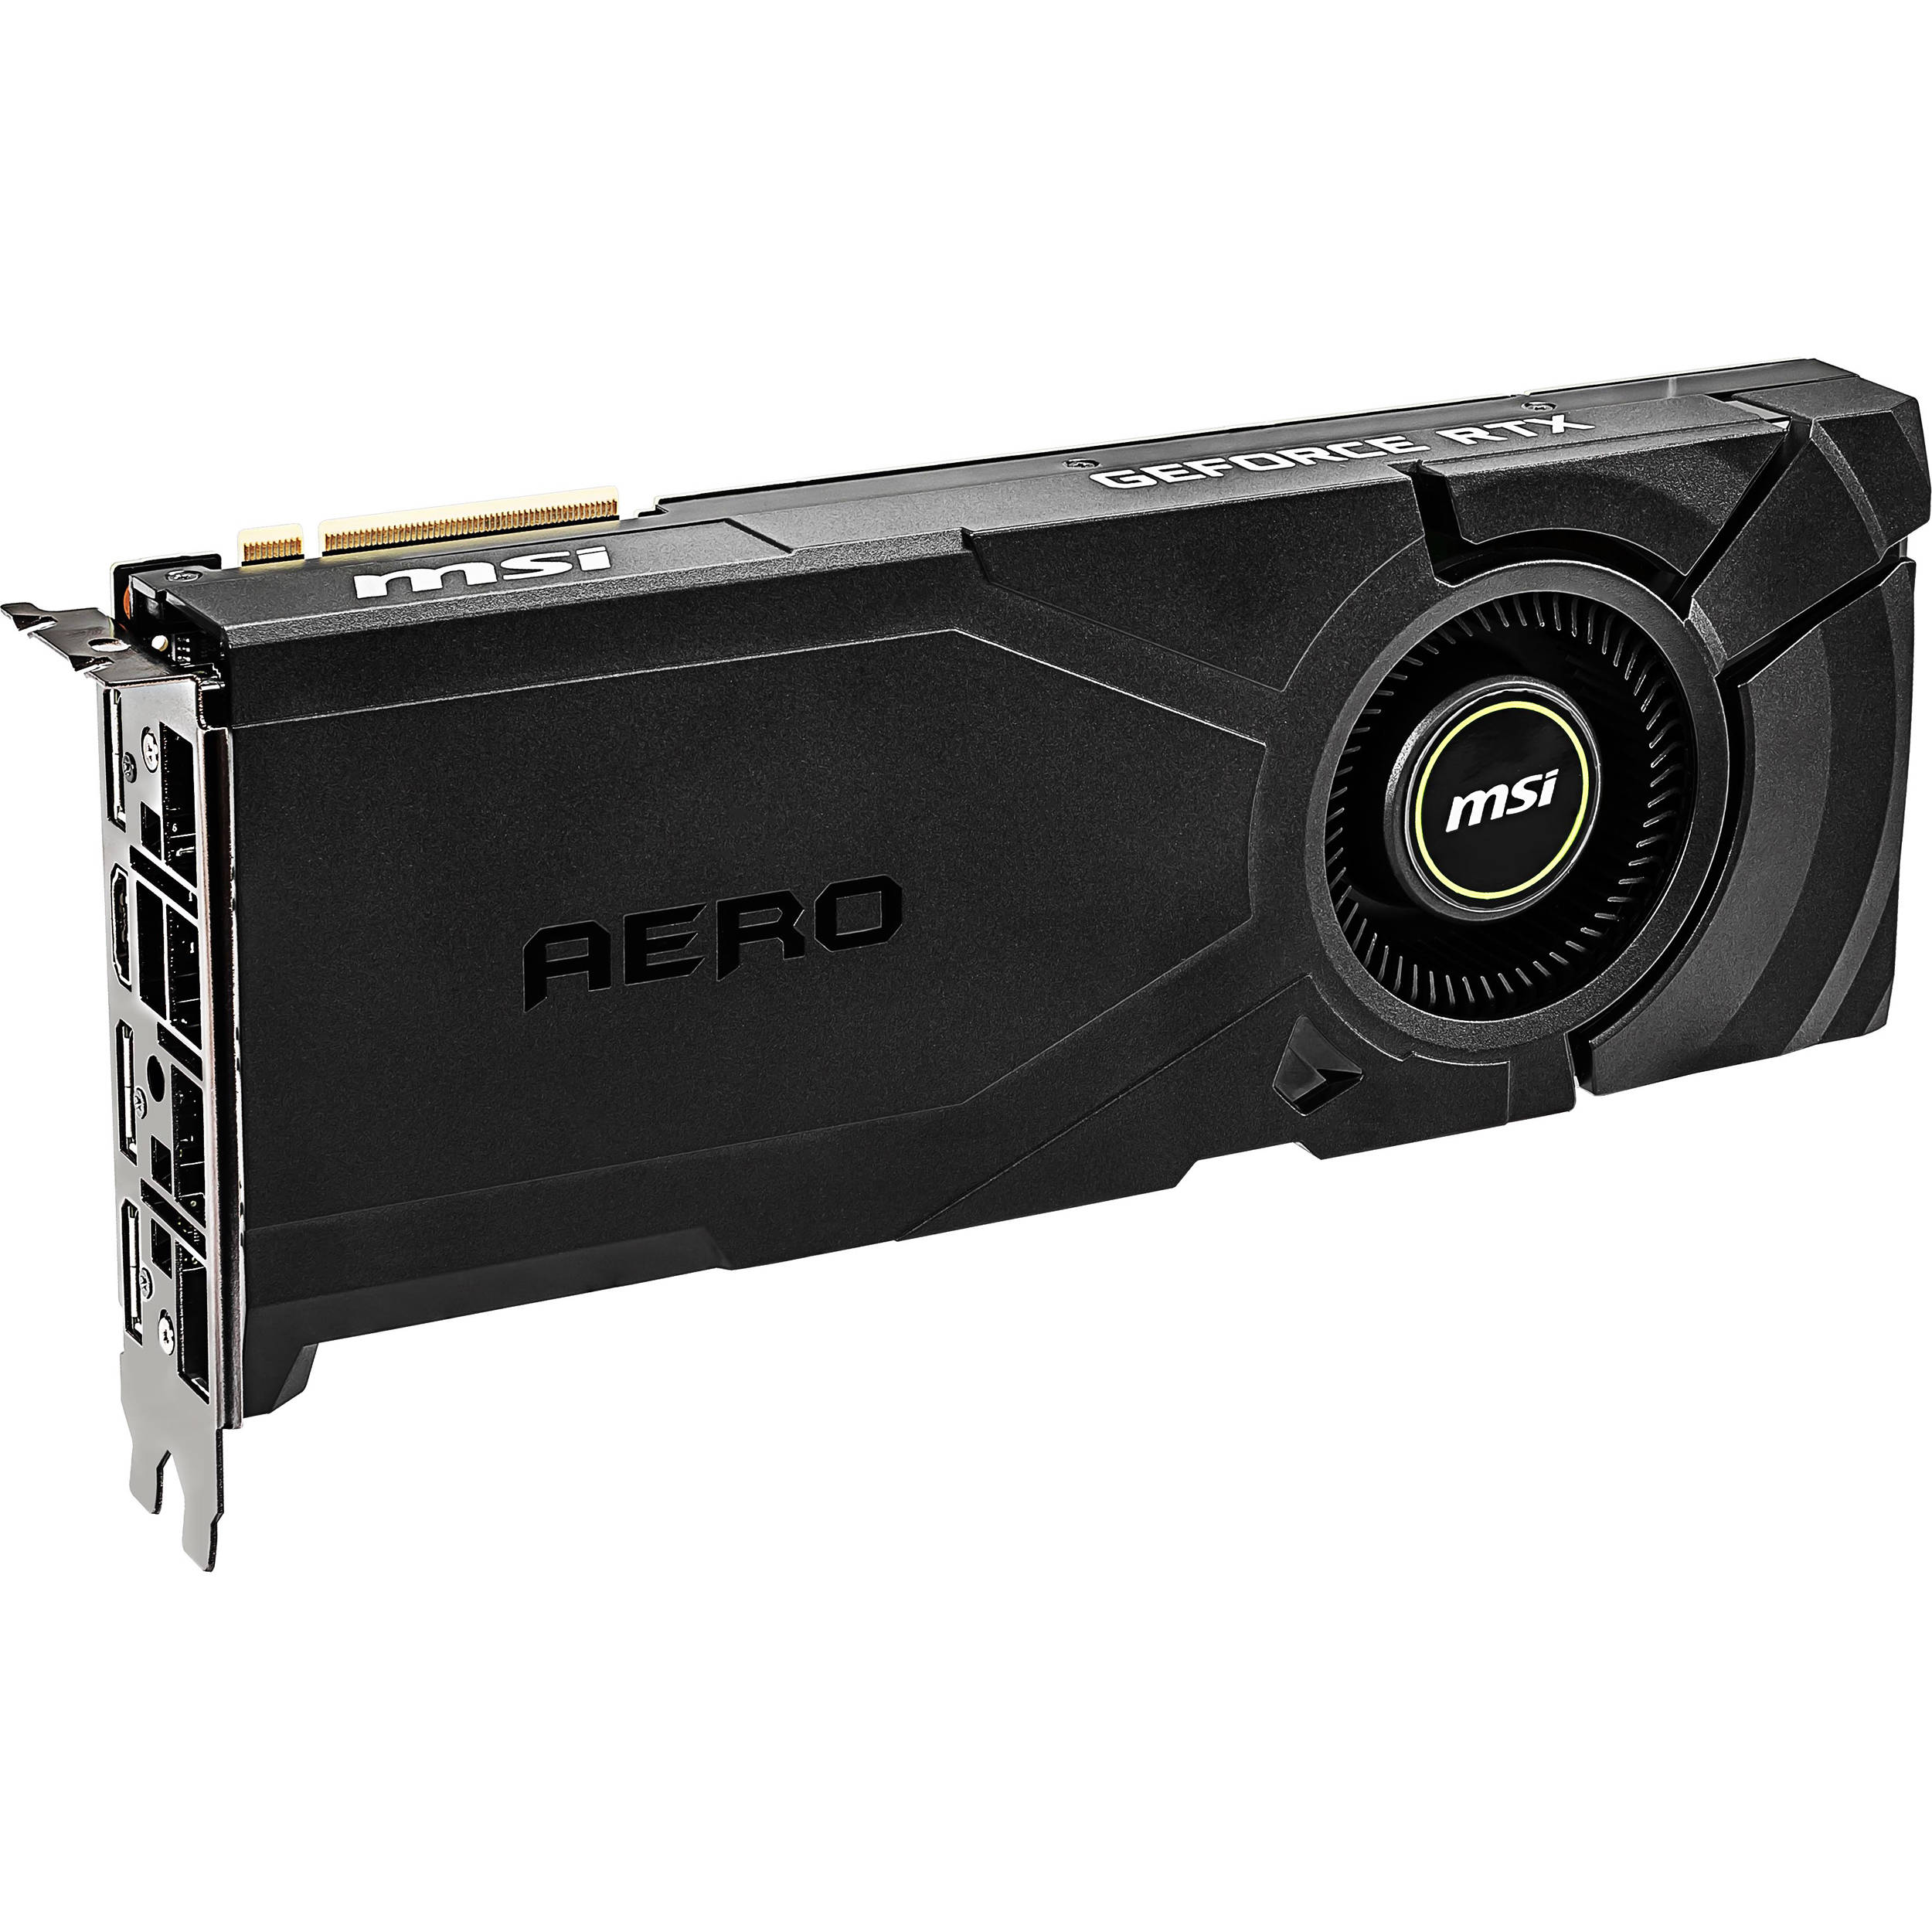 MSI GeForce RTX 2080 SUPER AERO Graphics Card